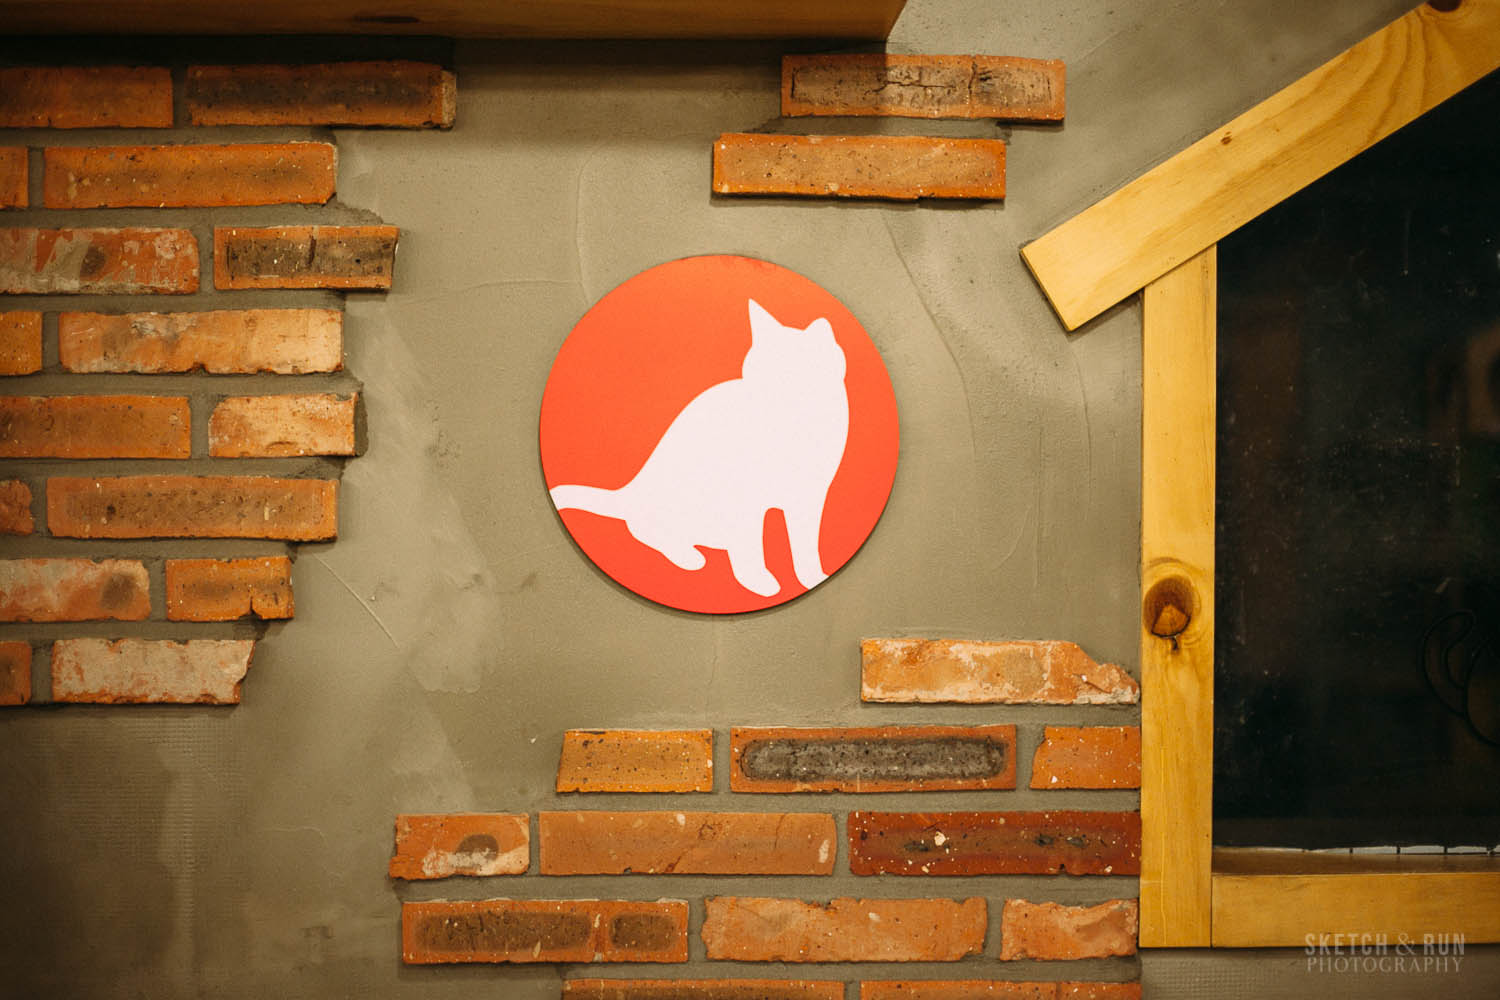 cat cafe, cafe, cat, decor, cat, hongdae